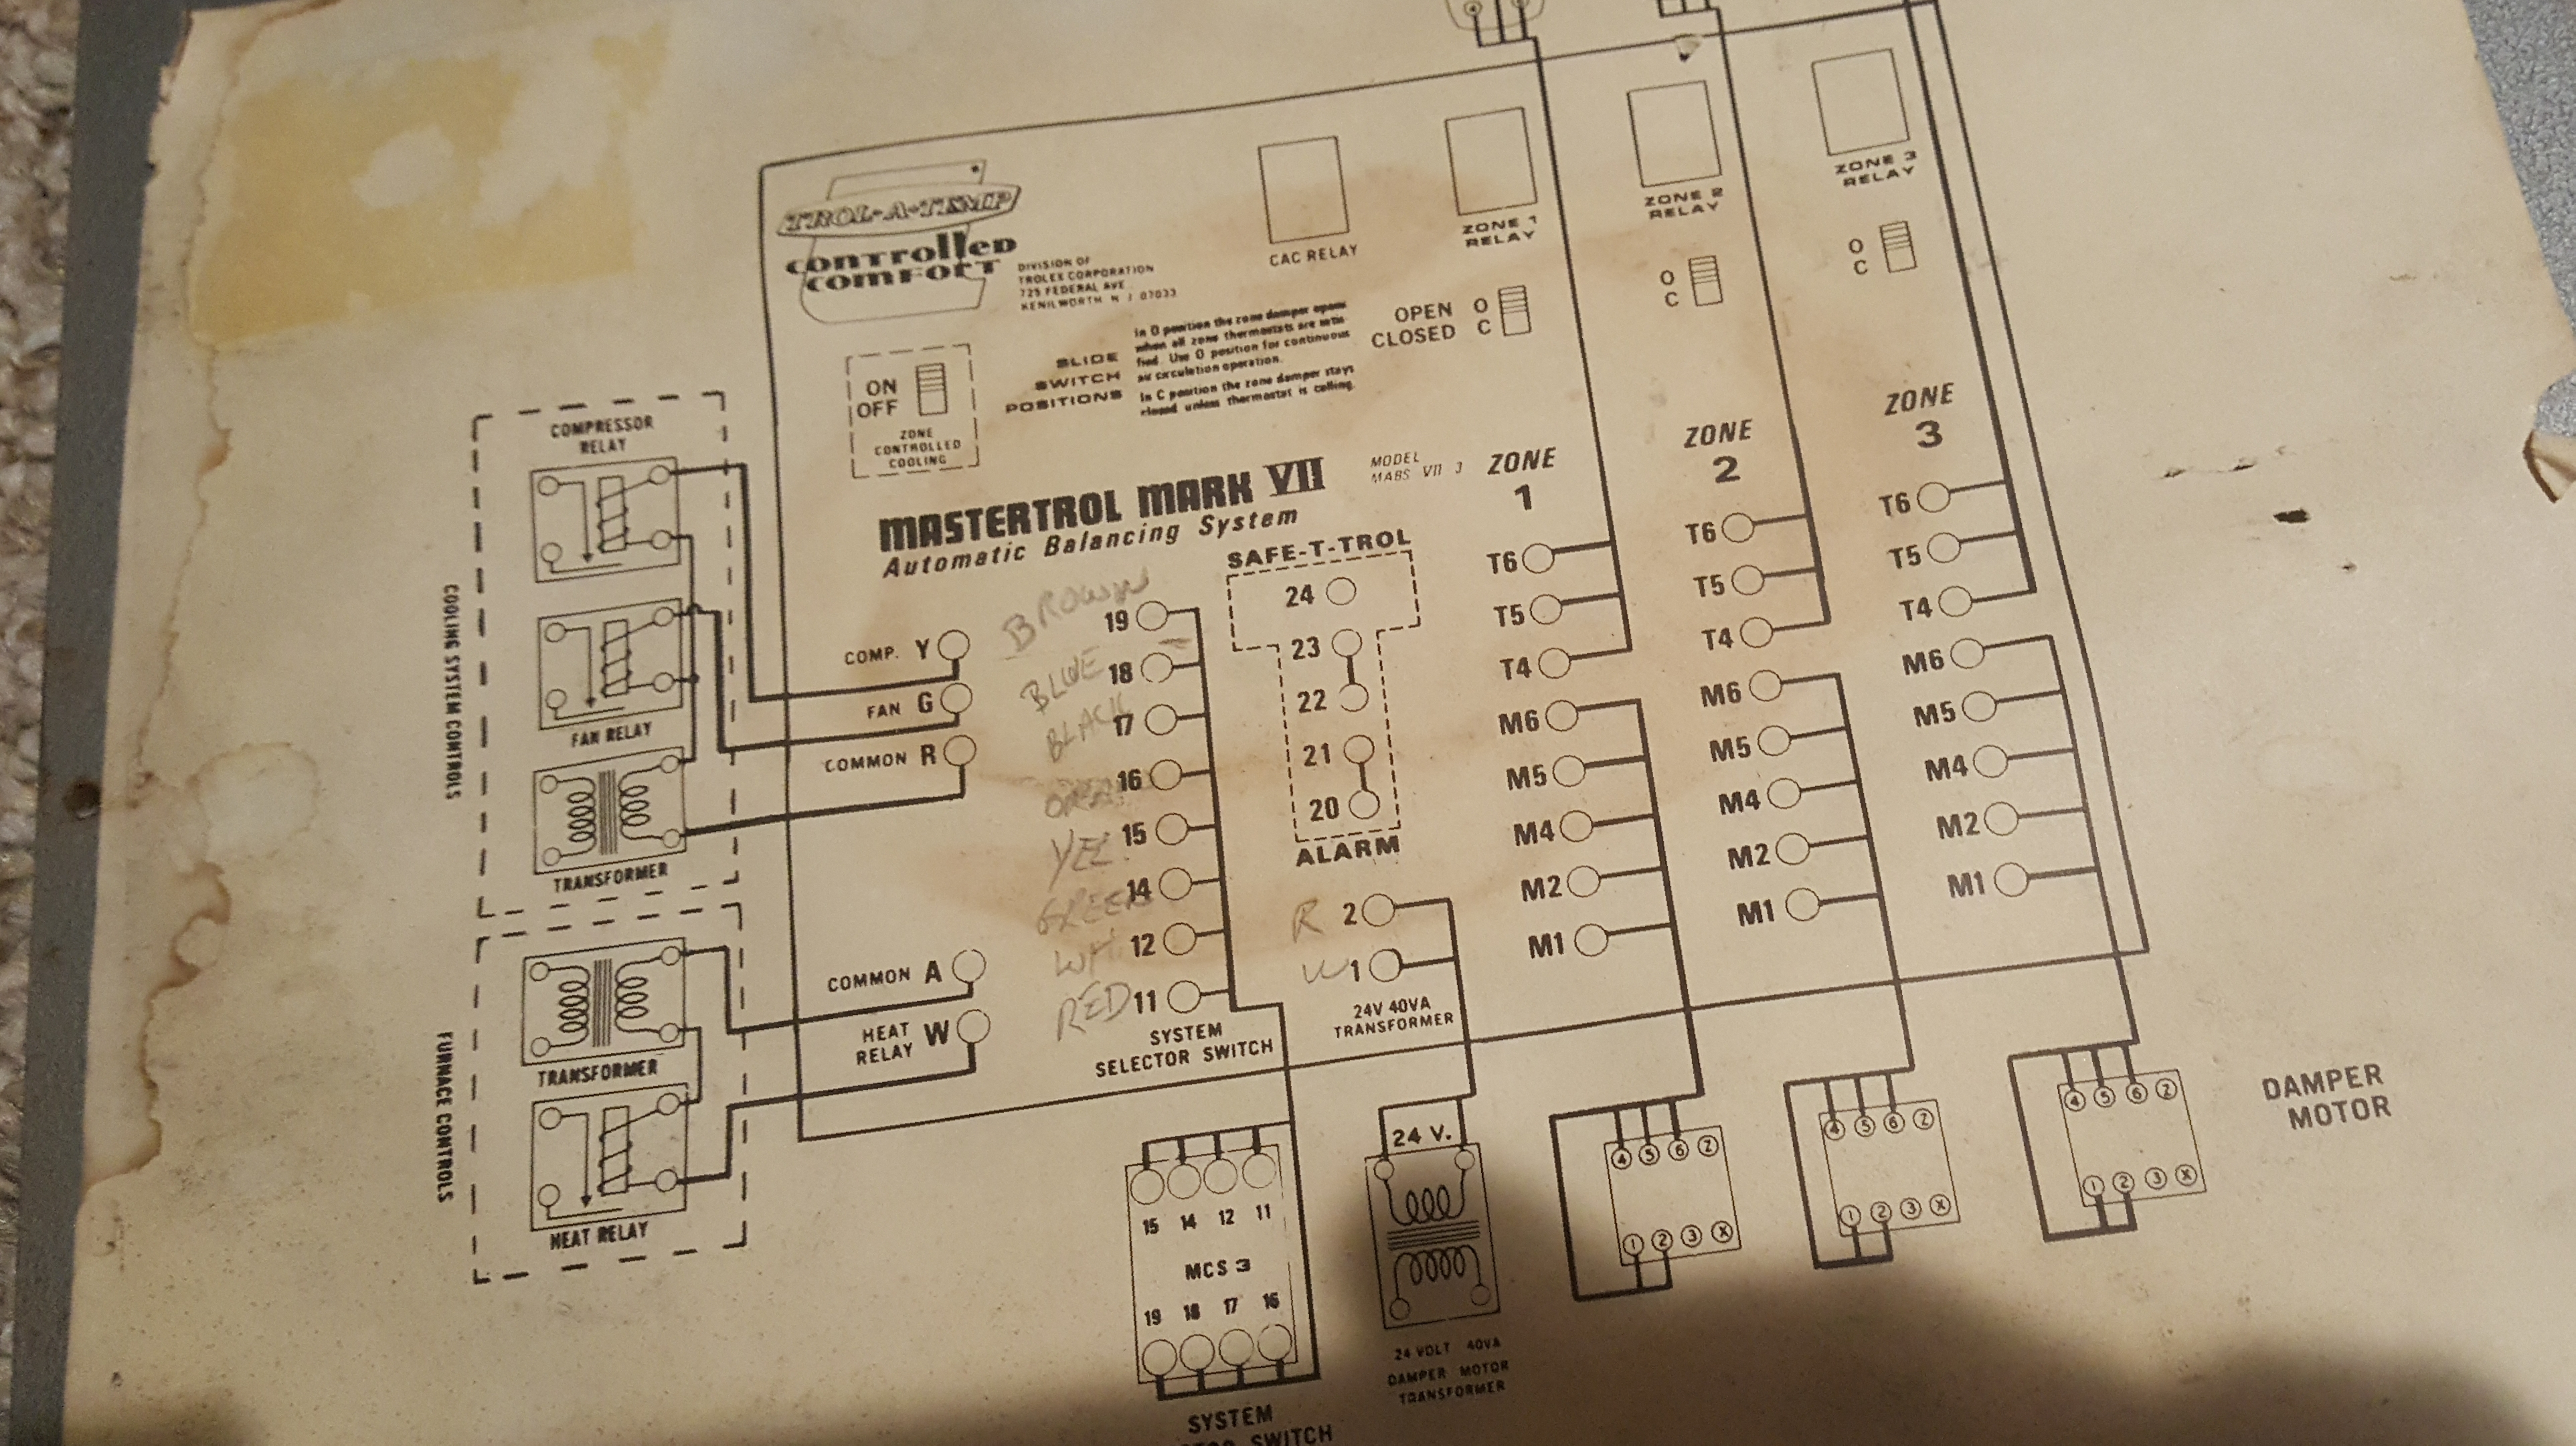 Wiring Honeywell Hz311 From A Trol Temp Mastertrol Mark Vii R8184g Diagram 46m